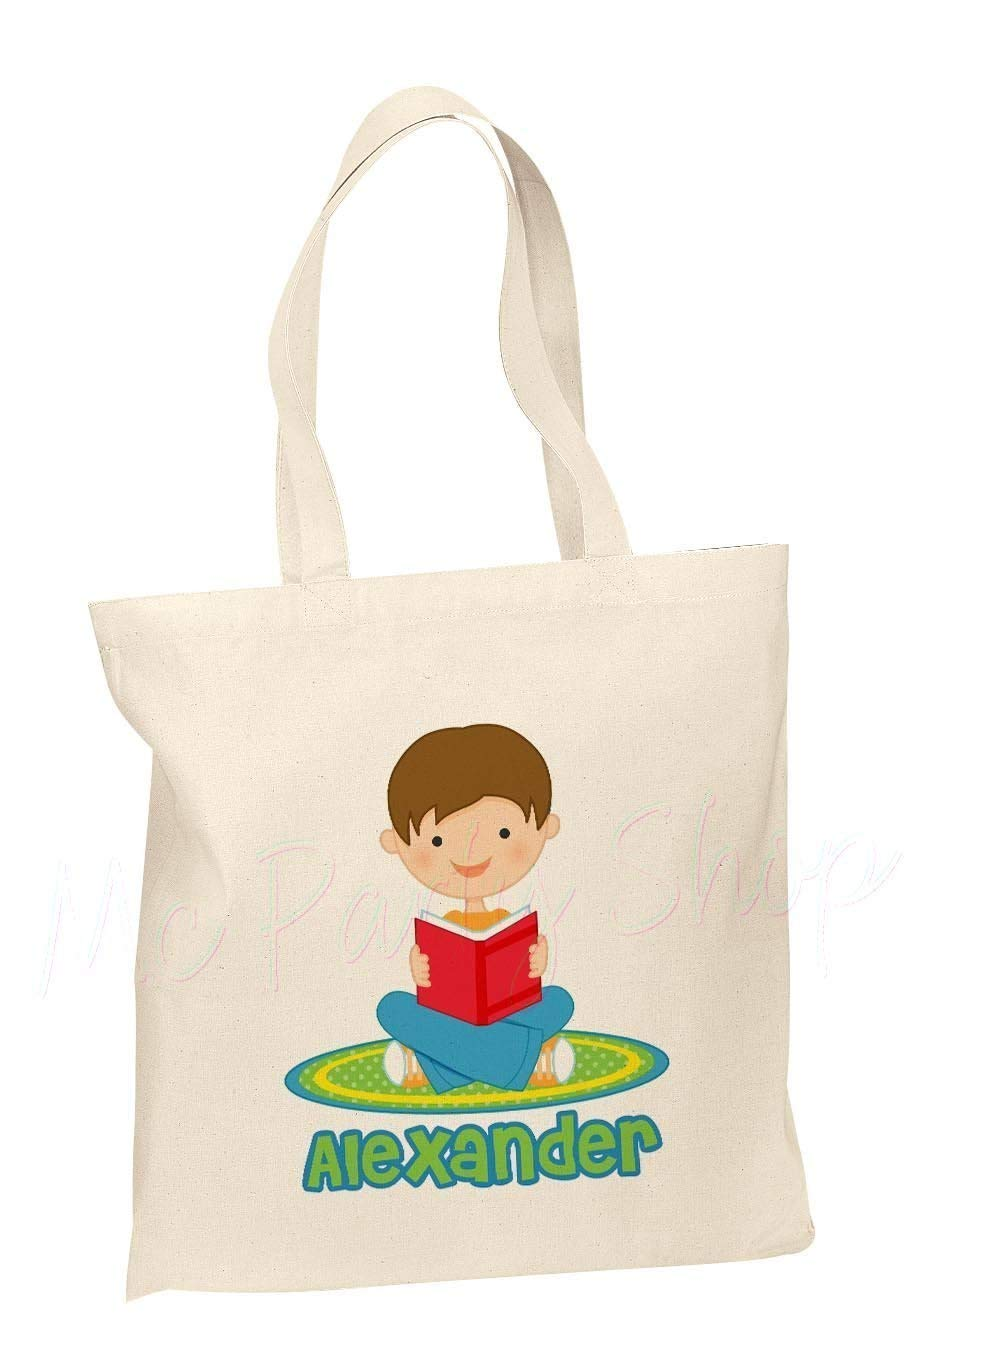 dd7ee6ebbede Amazon.com  Personalized Cotton Tote Bag - Kids Book Bag - Custom Book Bag  - Personalized Library Bag - Girl or Boy  Handmade